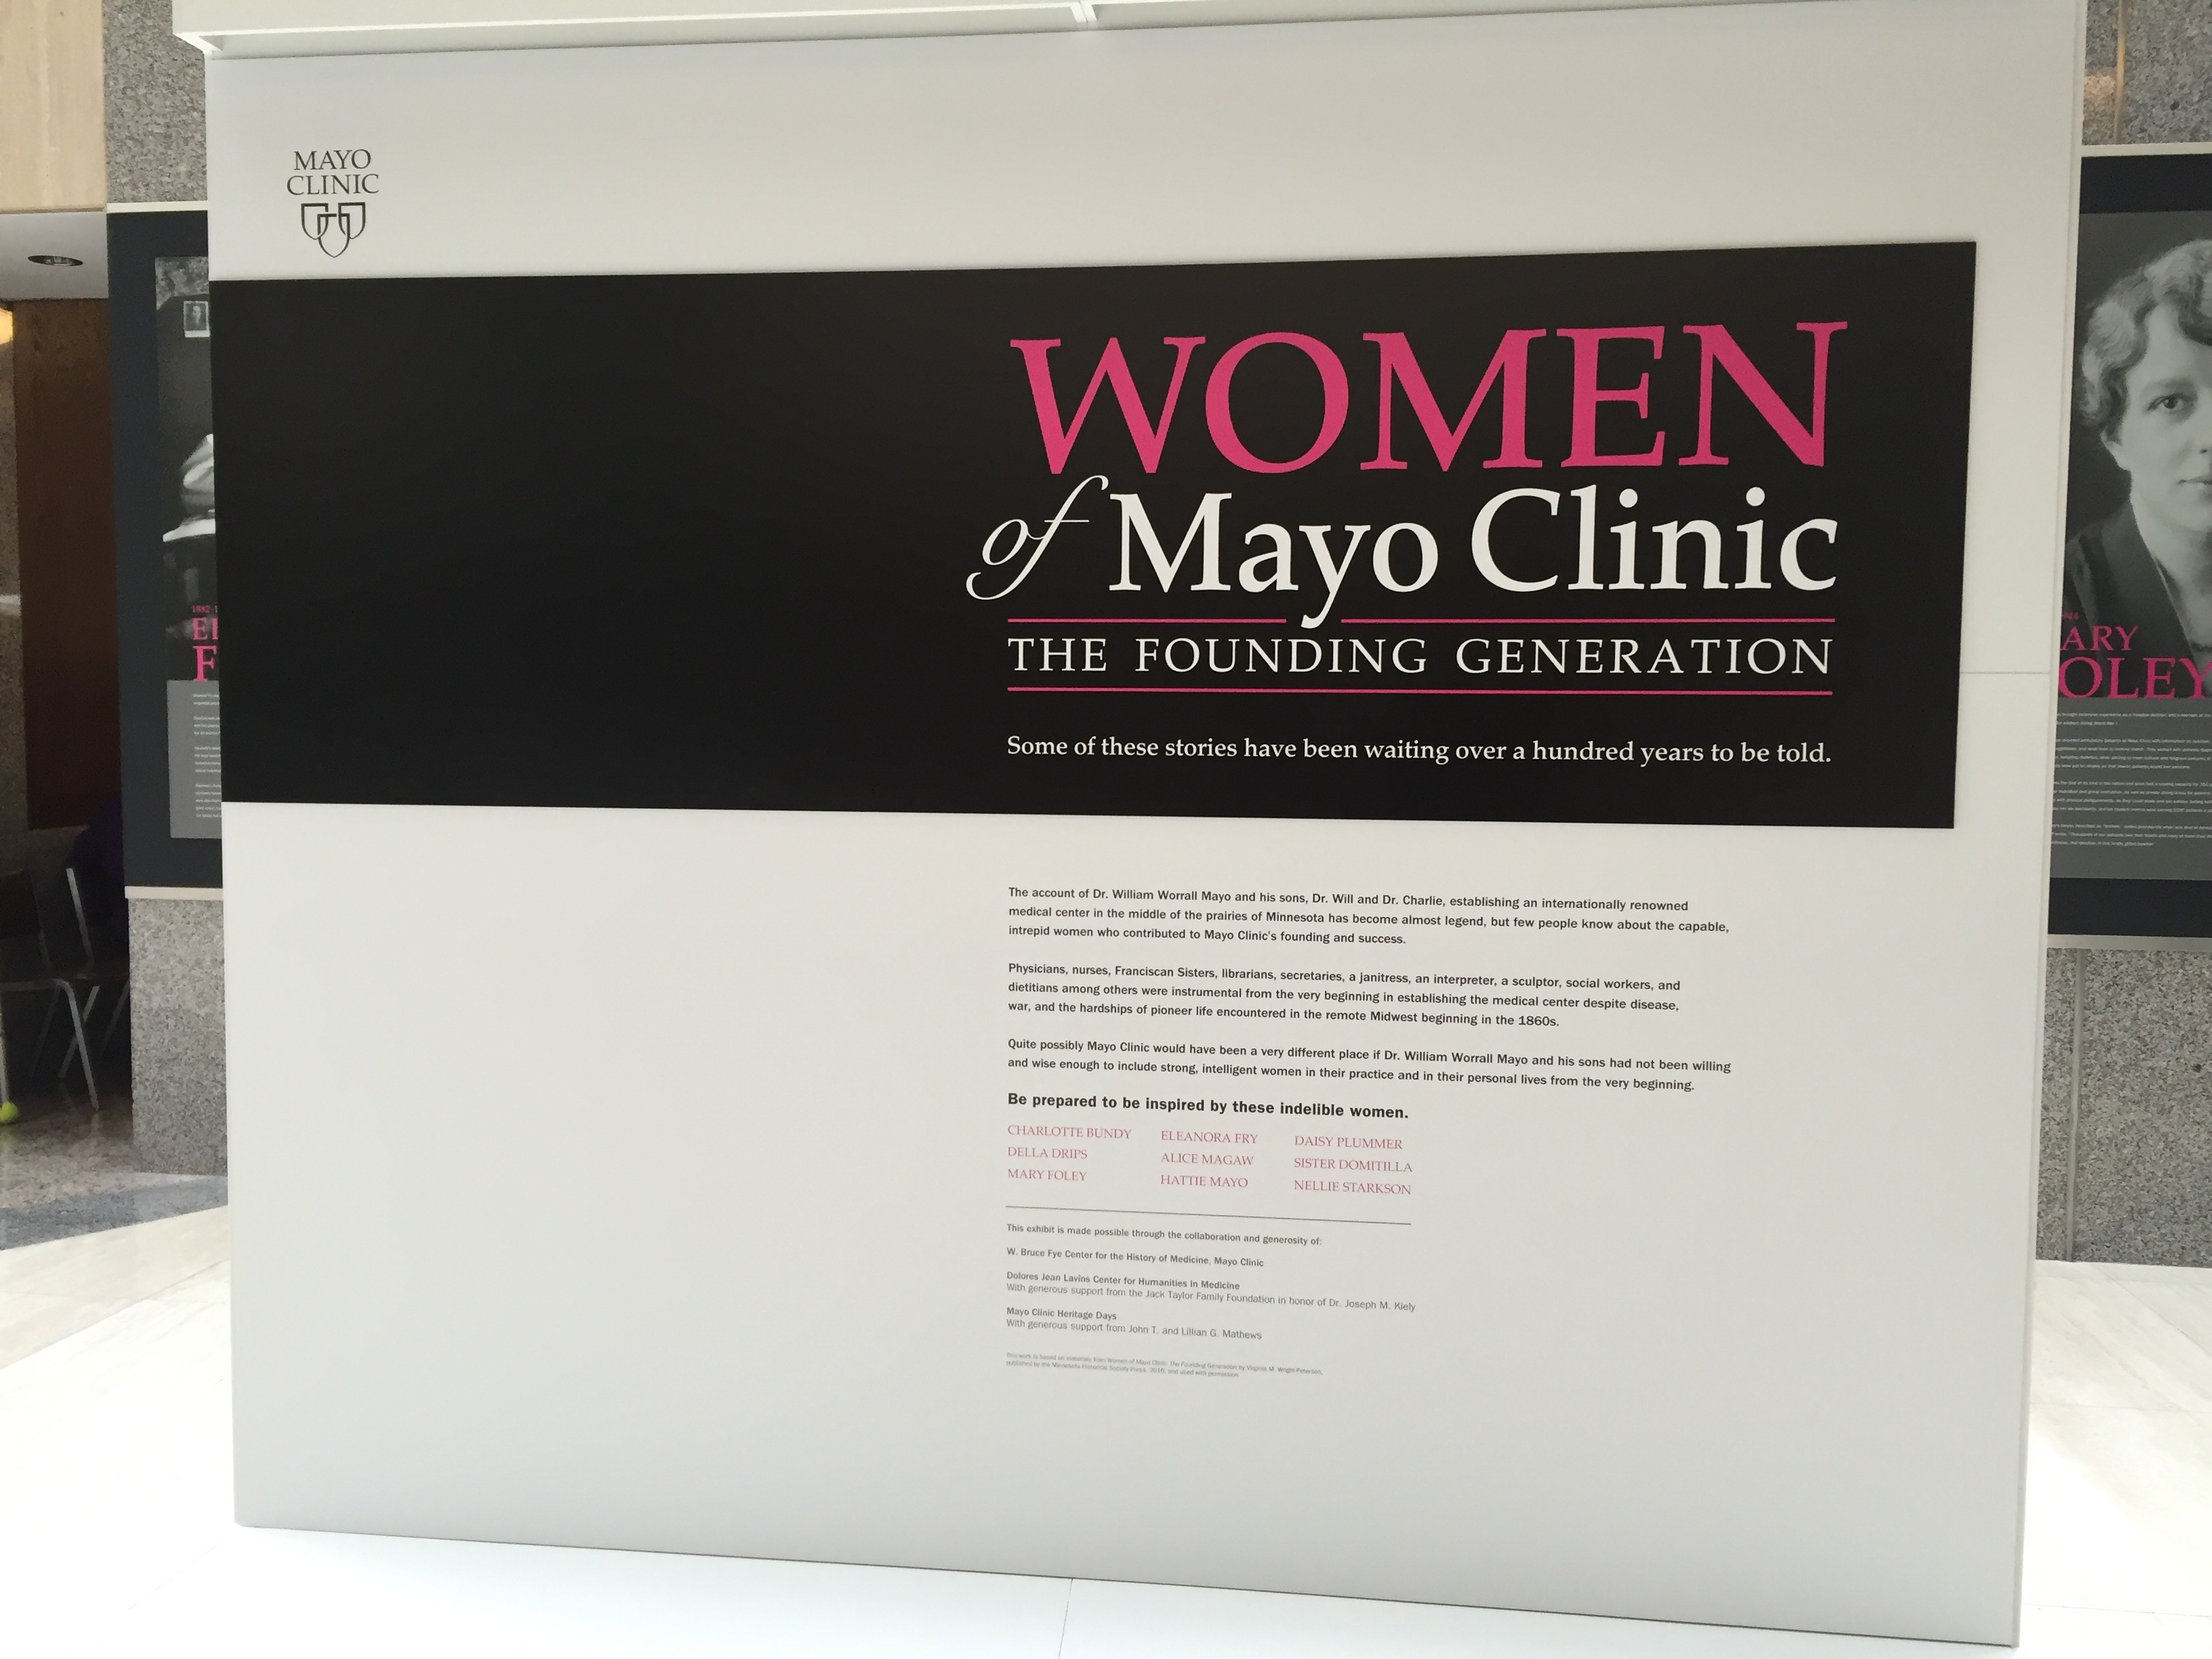 Women of Mayo Clinic: The Founding Generation is a reality